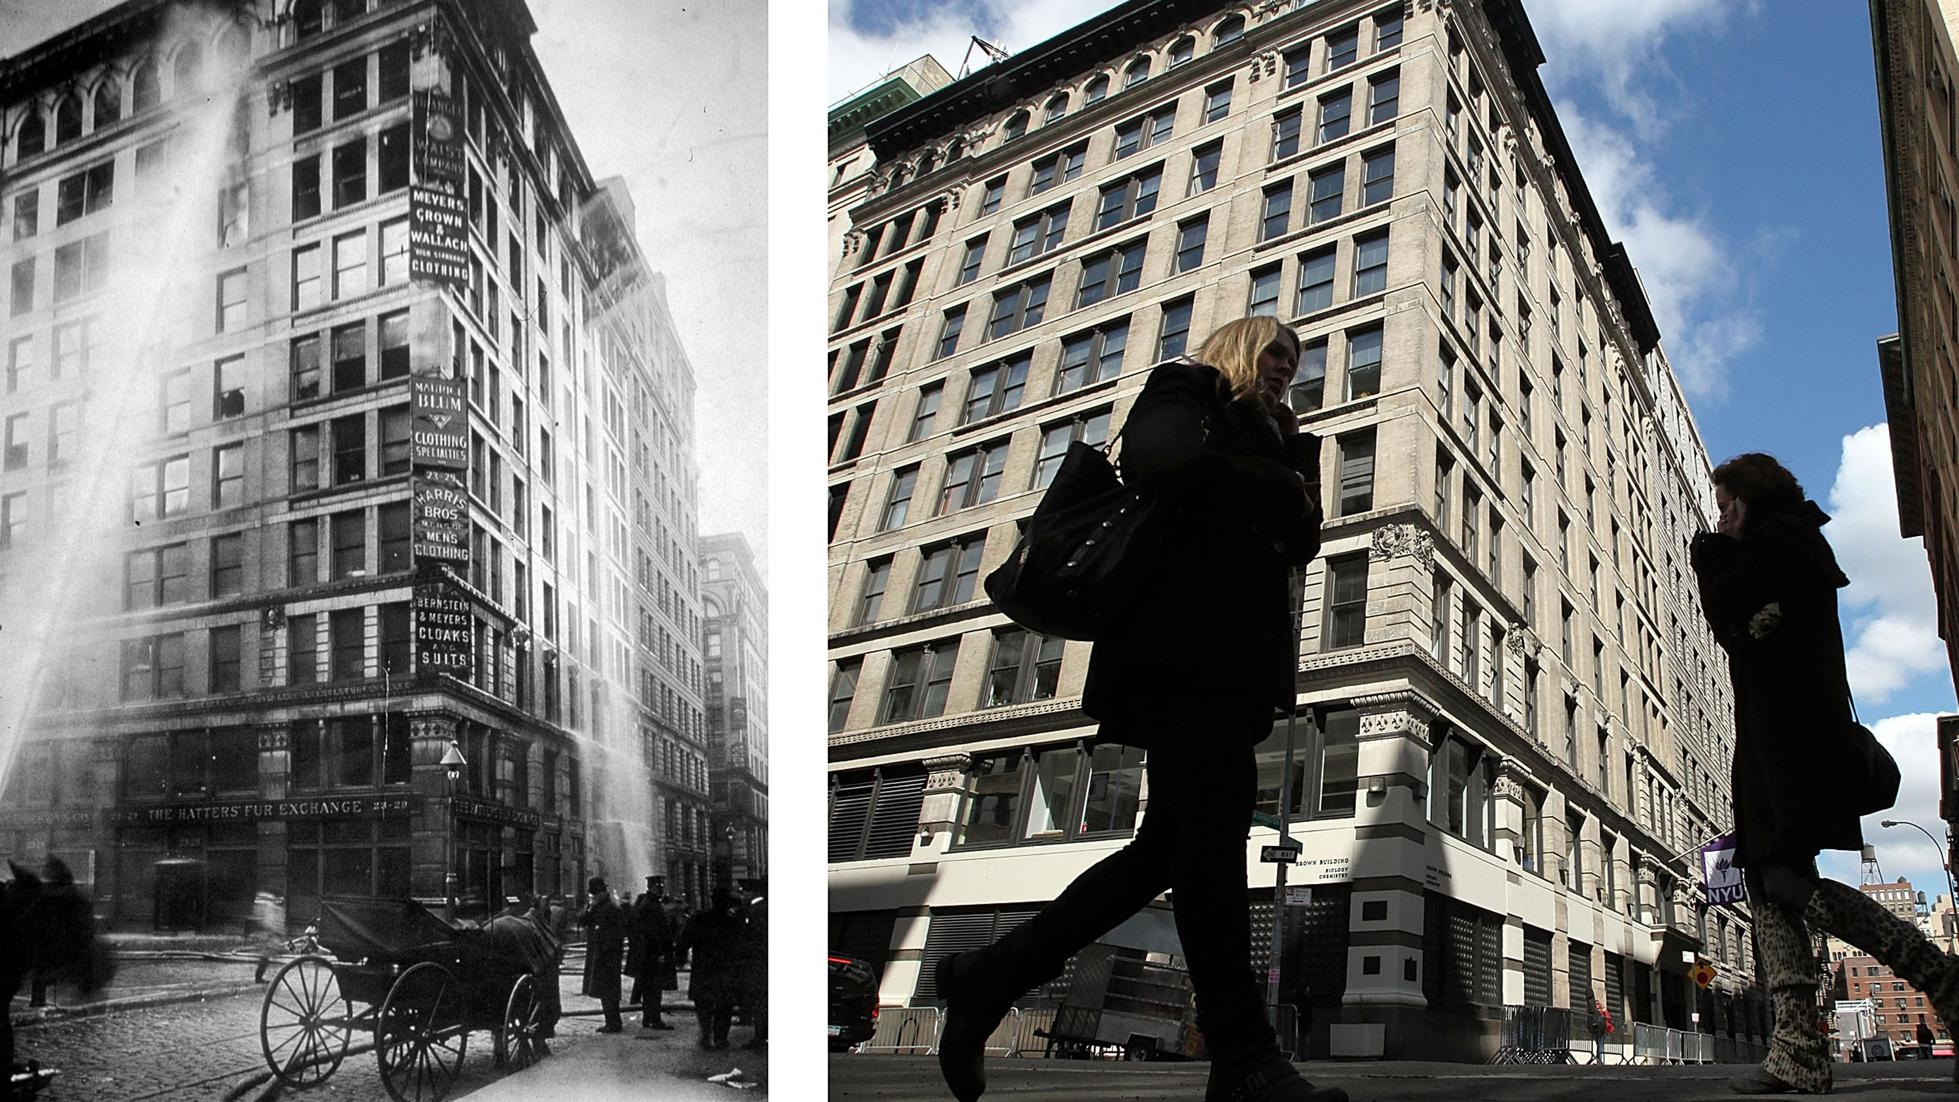 Triangle shirtwaist building in 1911 and today.